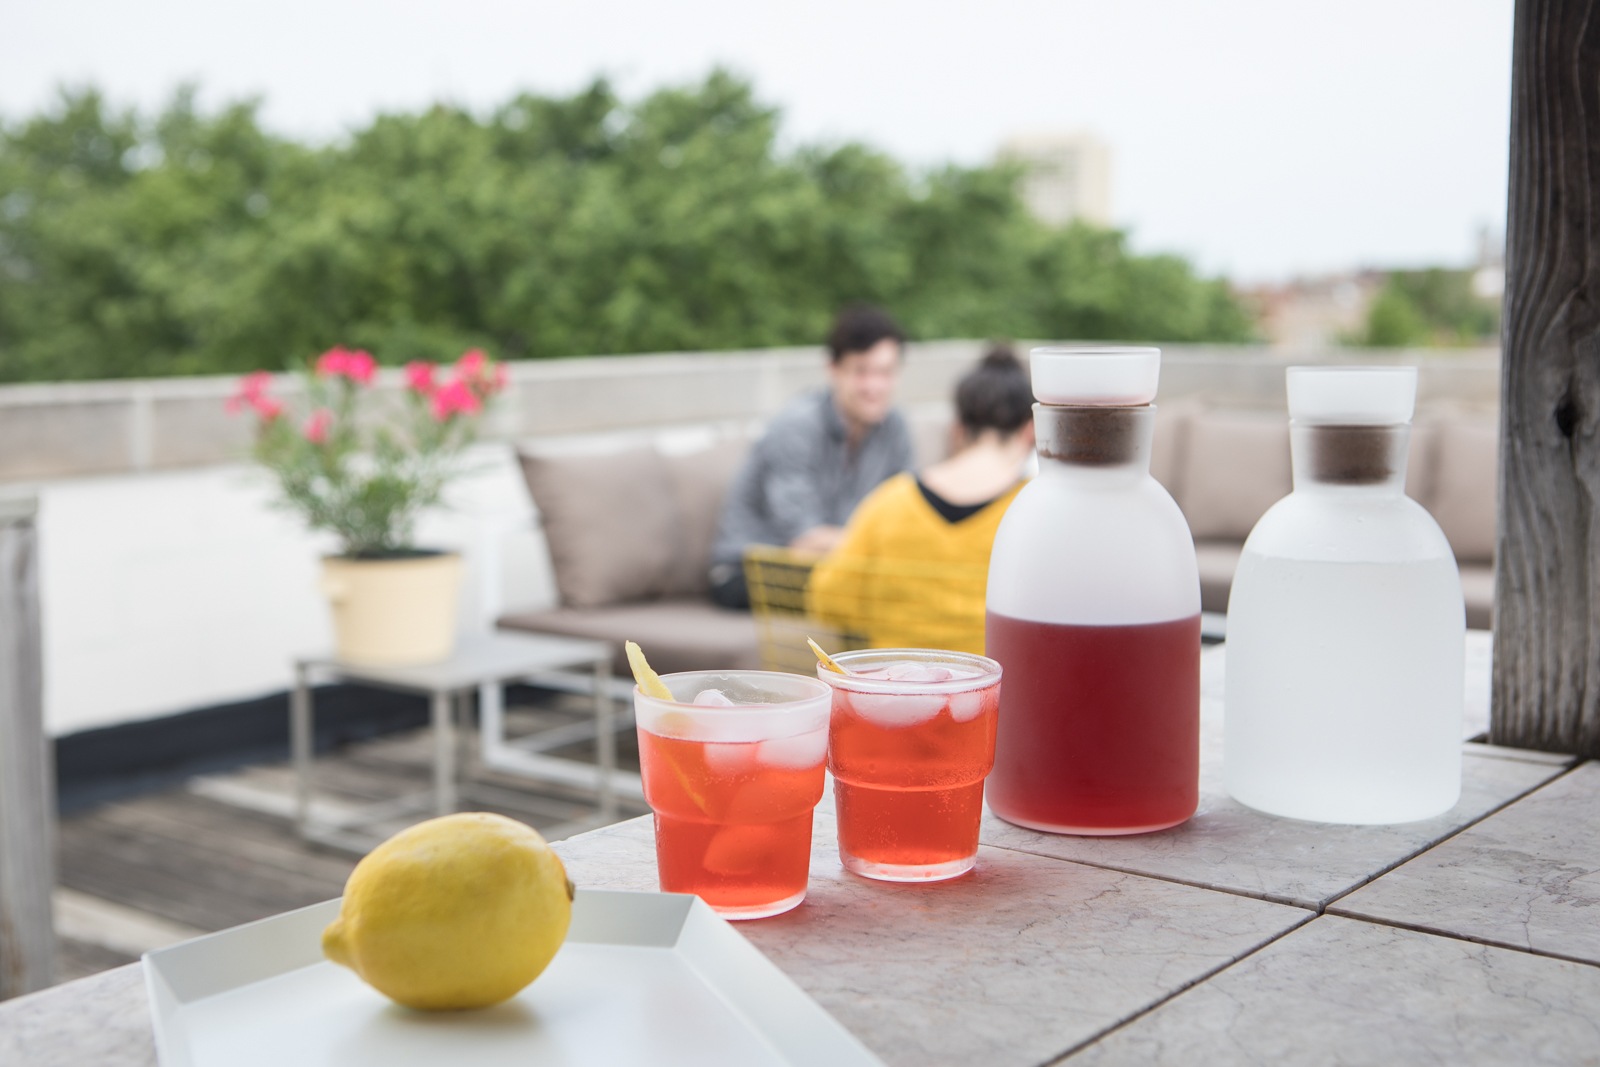 Make time for aperitivo time - Pair some Aperol or Campari with something bubbly and spend an afternoon with some good spritzes, tasty bites and great company.